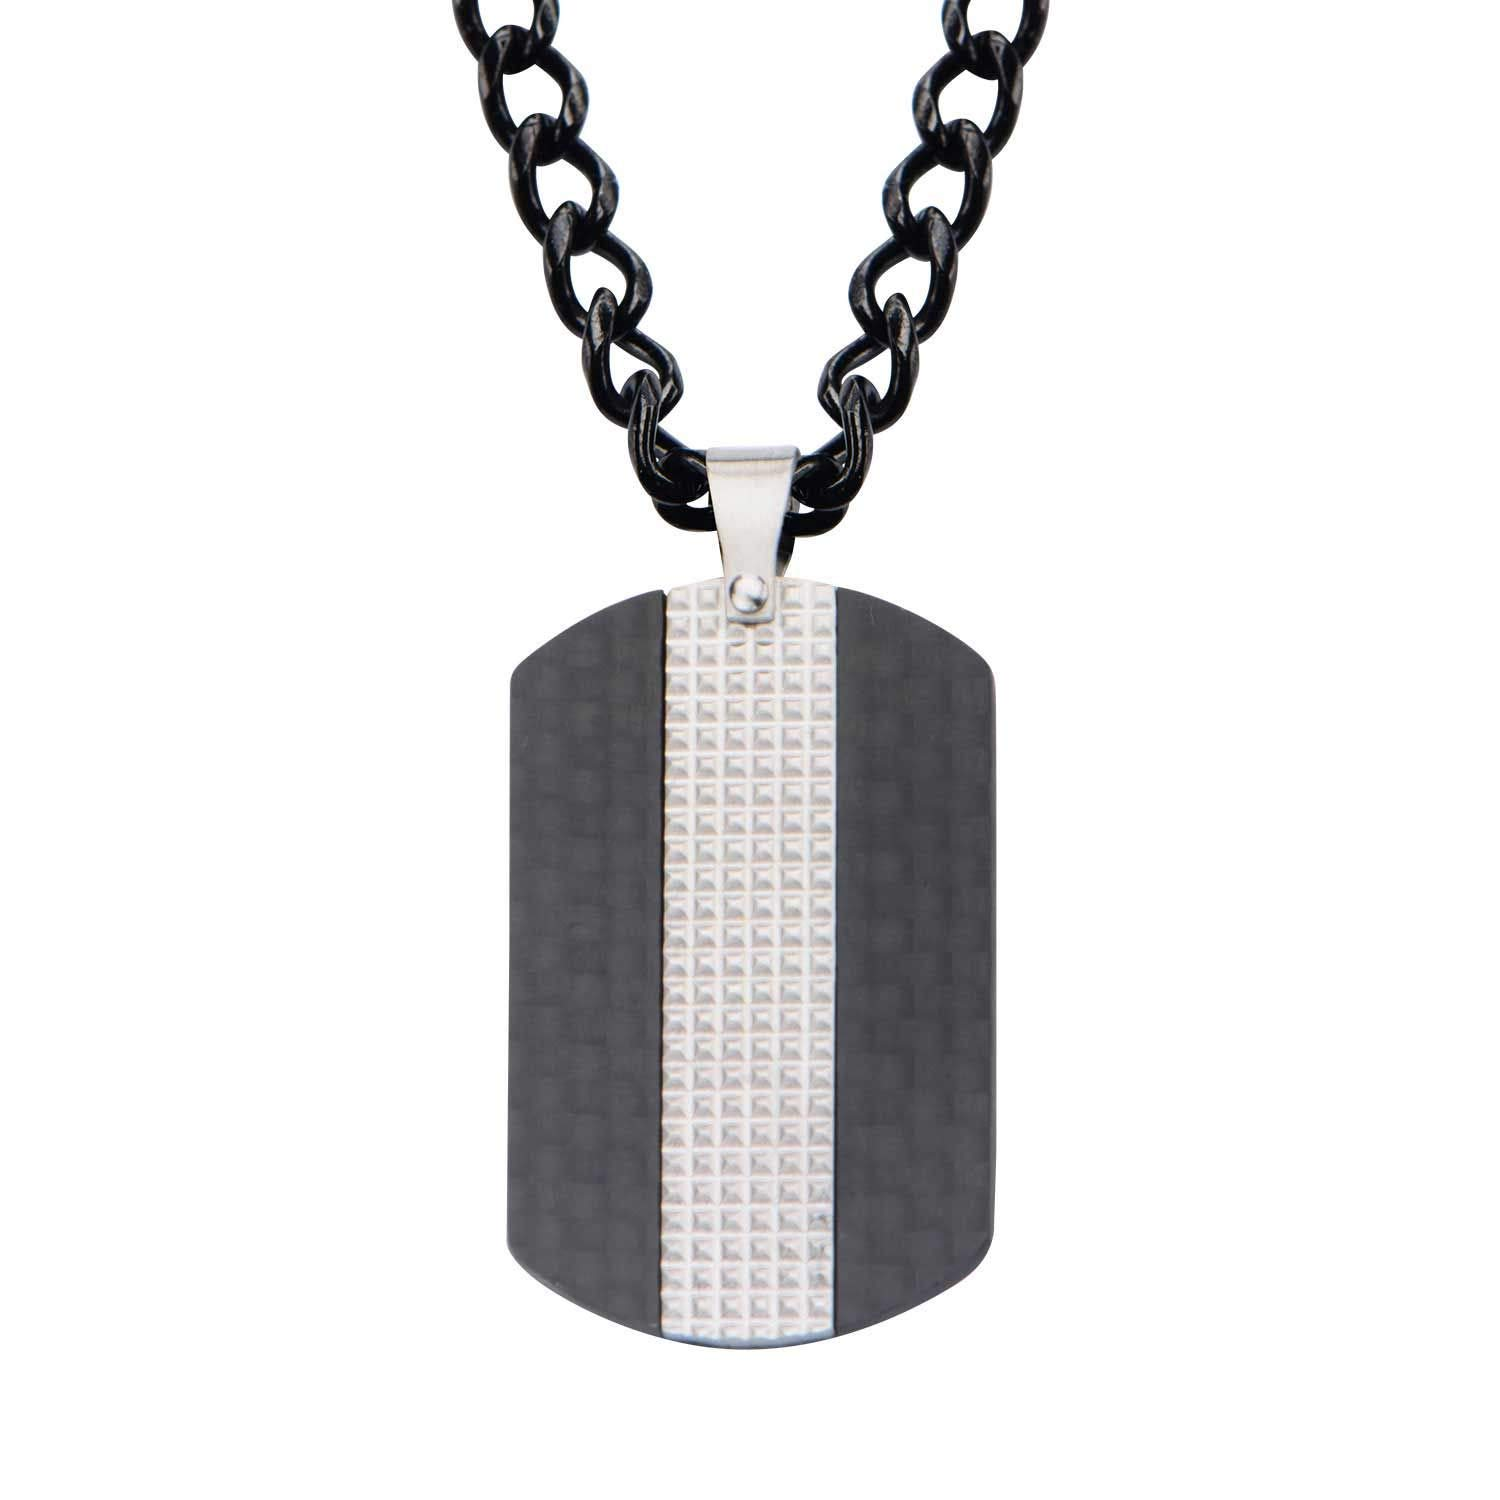 Rare Hills Black Plated in Solid Carbon Fiber Dog Tag Pendant with Chain